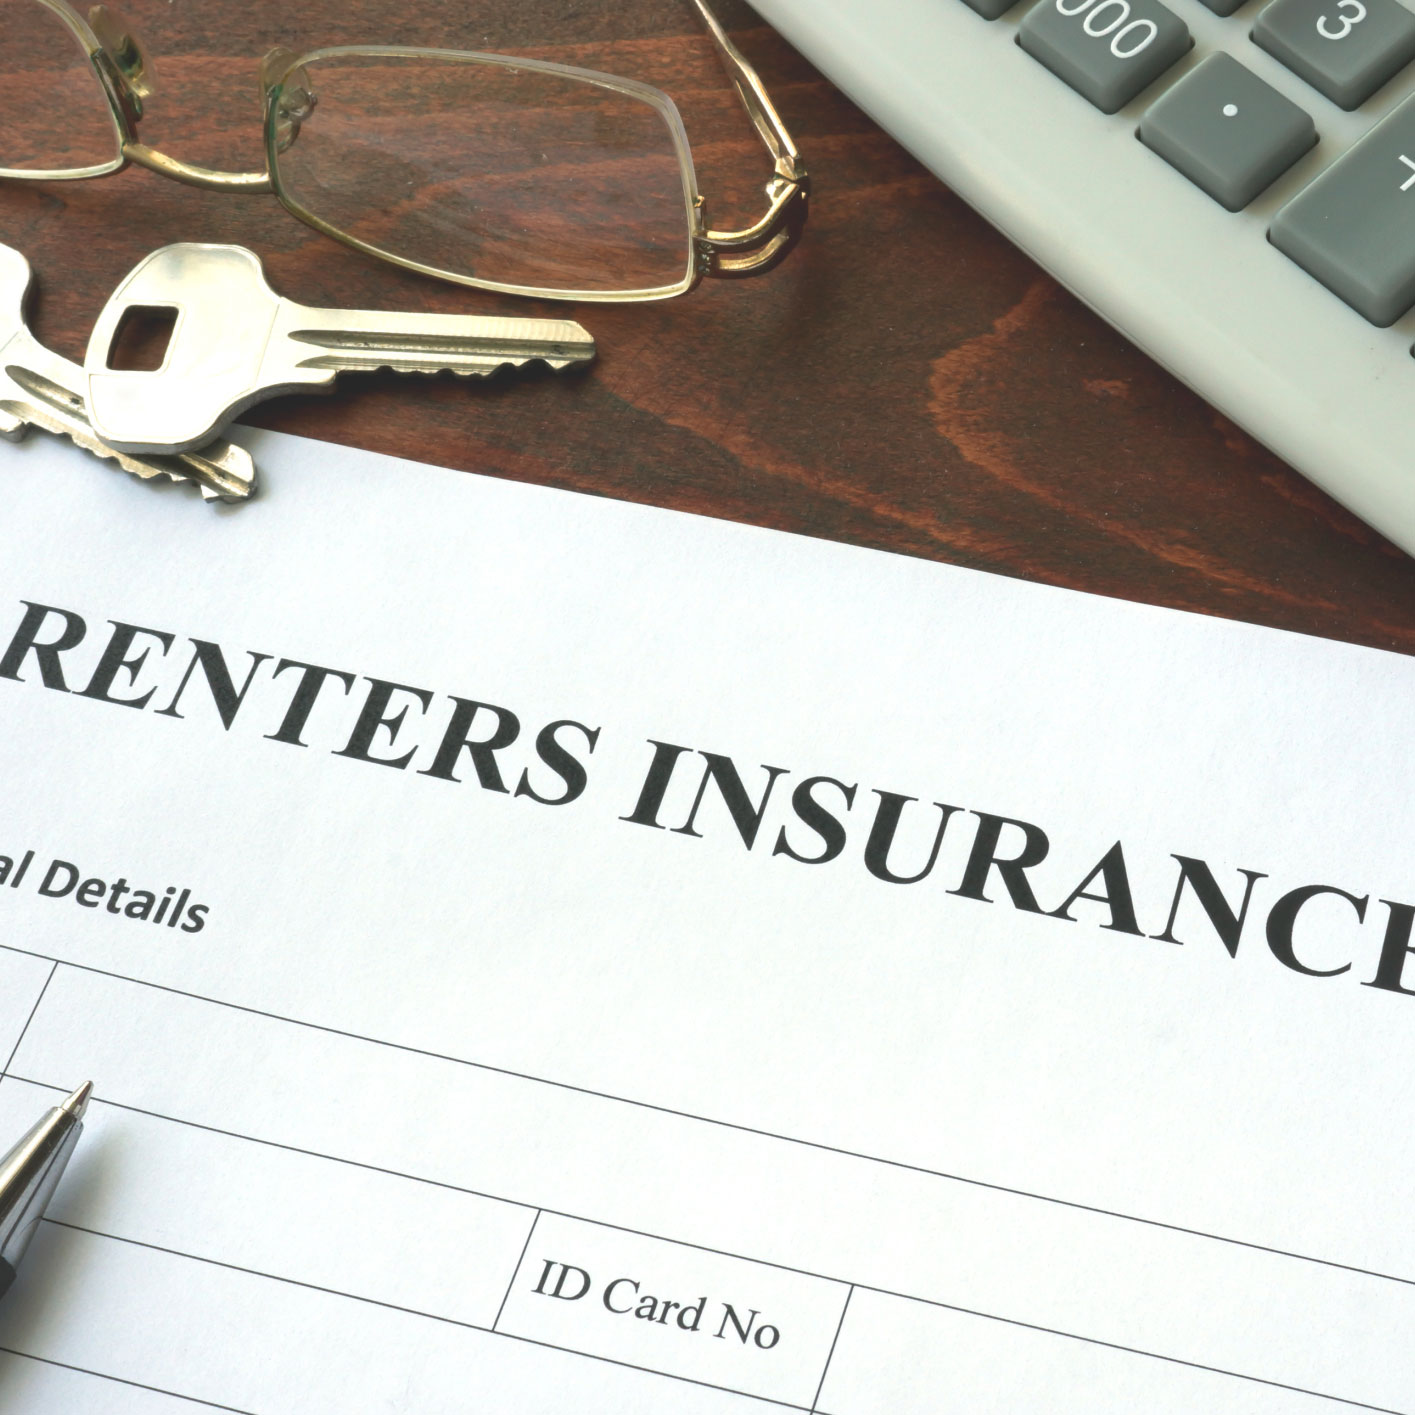 Renters Com: 4 Ways Renters Insurance Has You Covered